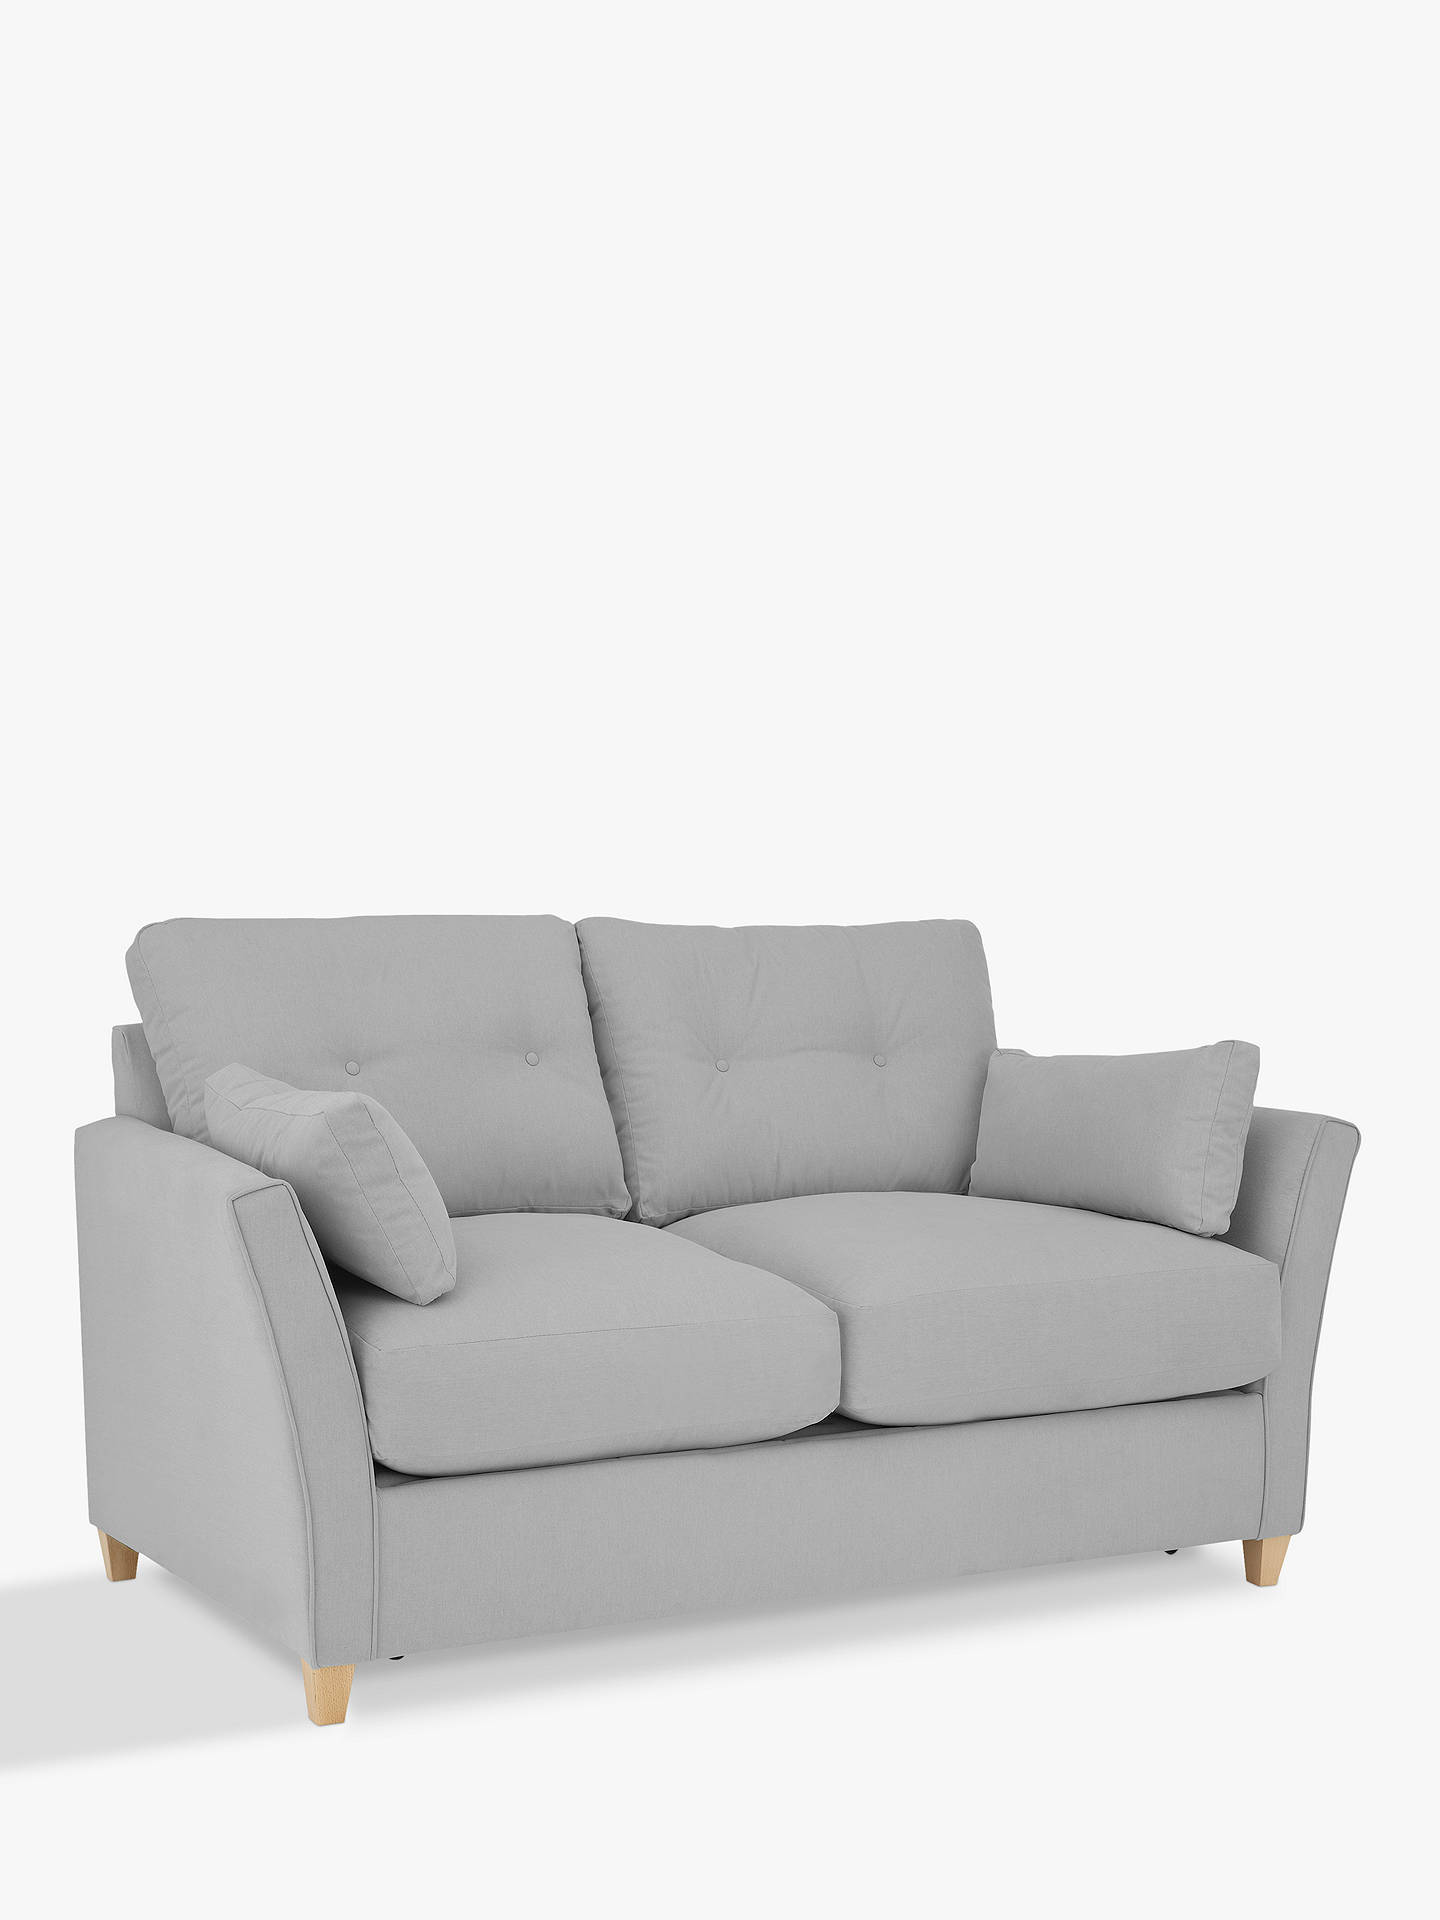 Buyjohn lewis partners chopin small pocket sprung sofa bed online at johnlewis